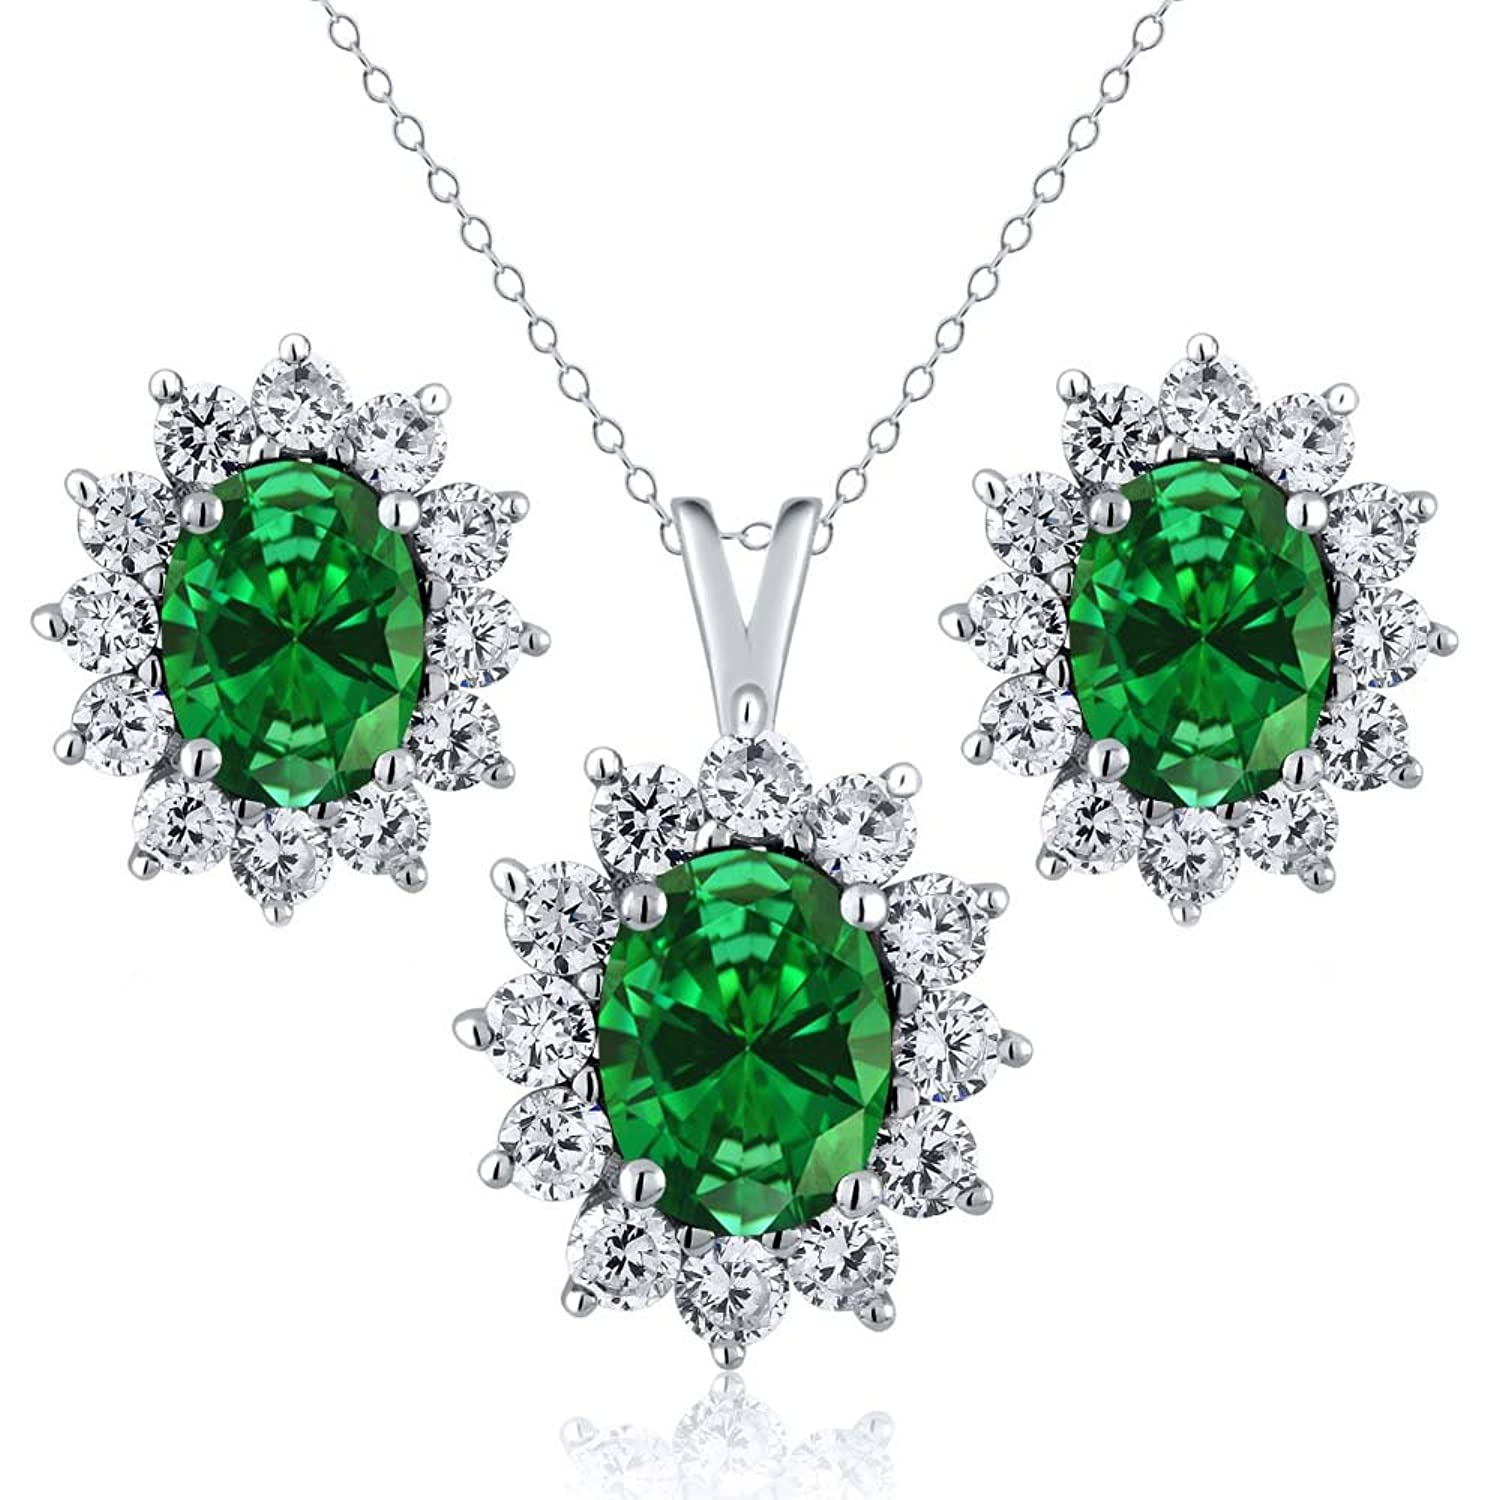 3.40 Ct Oval Green Simulated Emerald 925 Sterling Silver Pendant Earrings Set with 18 Inch Silver Chain